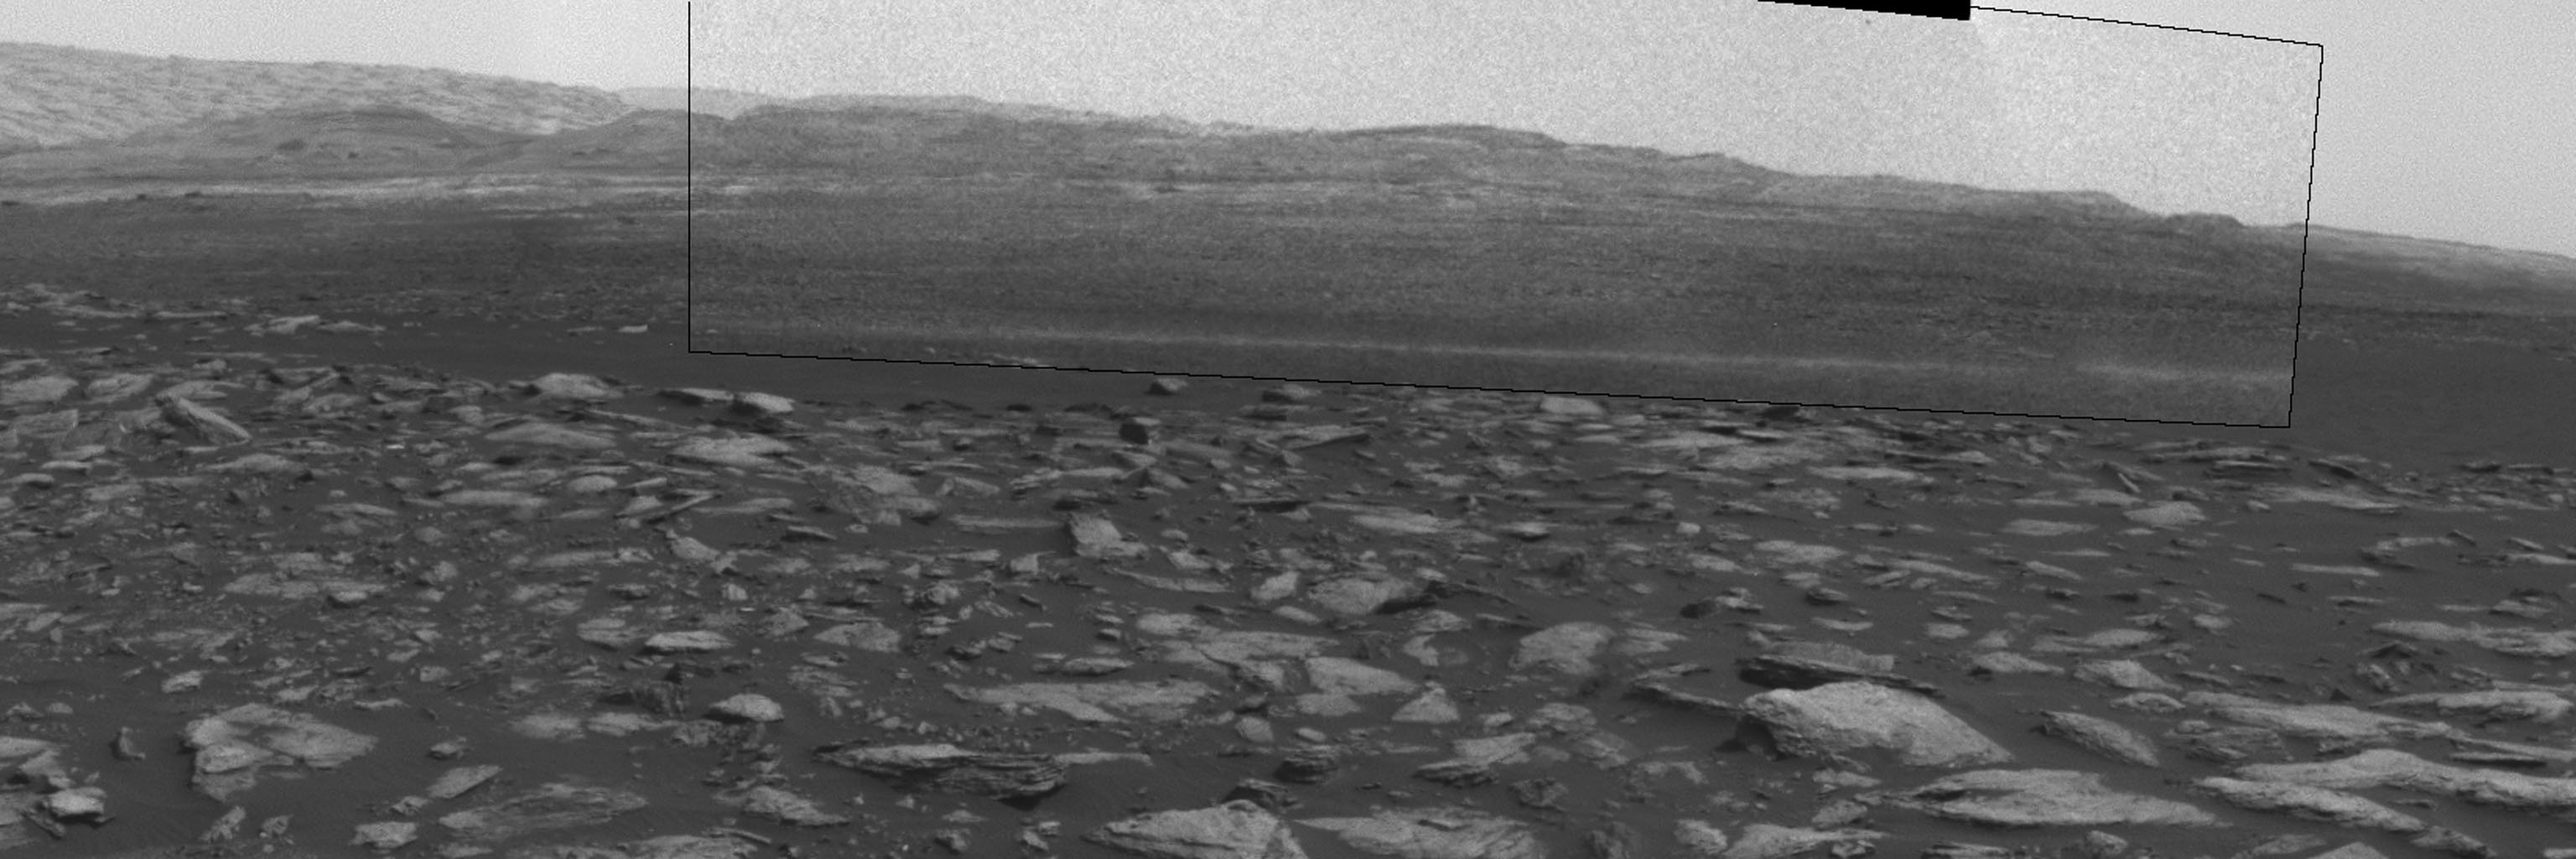 This frame from an animation shows a dust-carrying whirlwind, called a dust devil, scooting across the ground inside Gale Crater, as observed on the local summer afternoon of NASA's Curiosity Mars Rover's on Feb. 1, 2017.